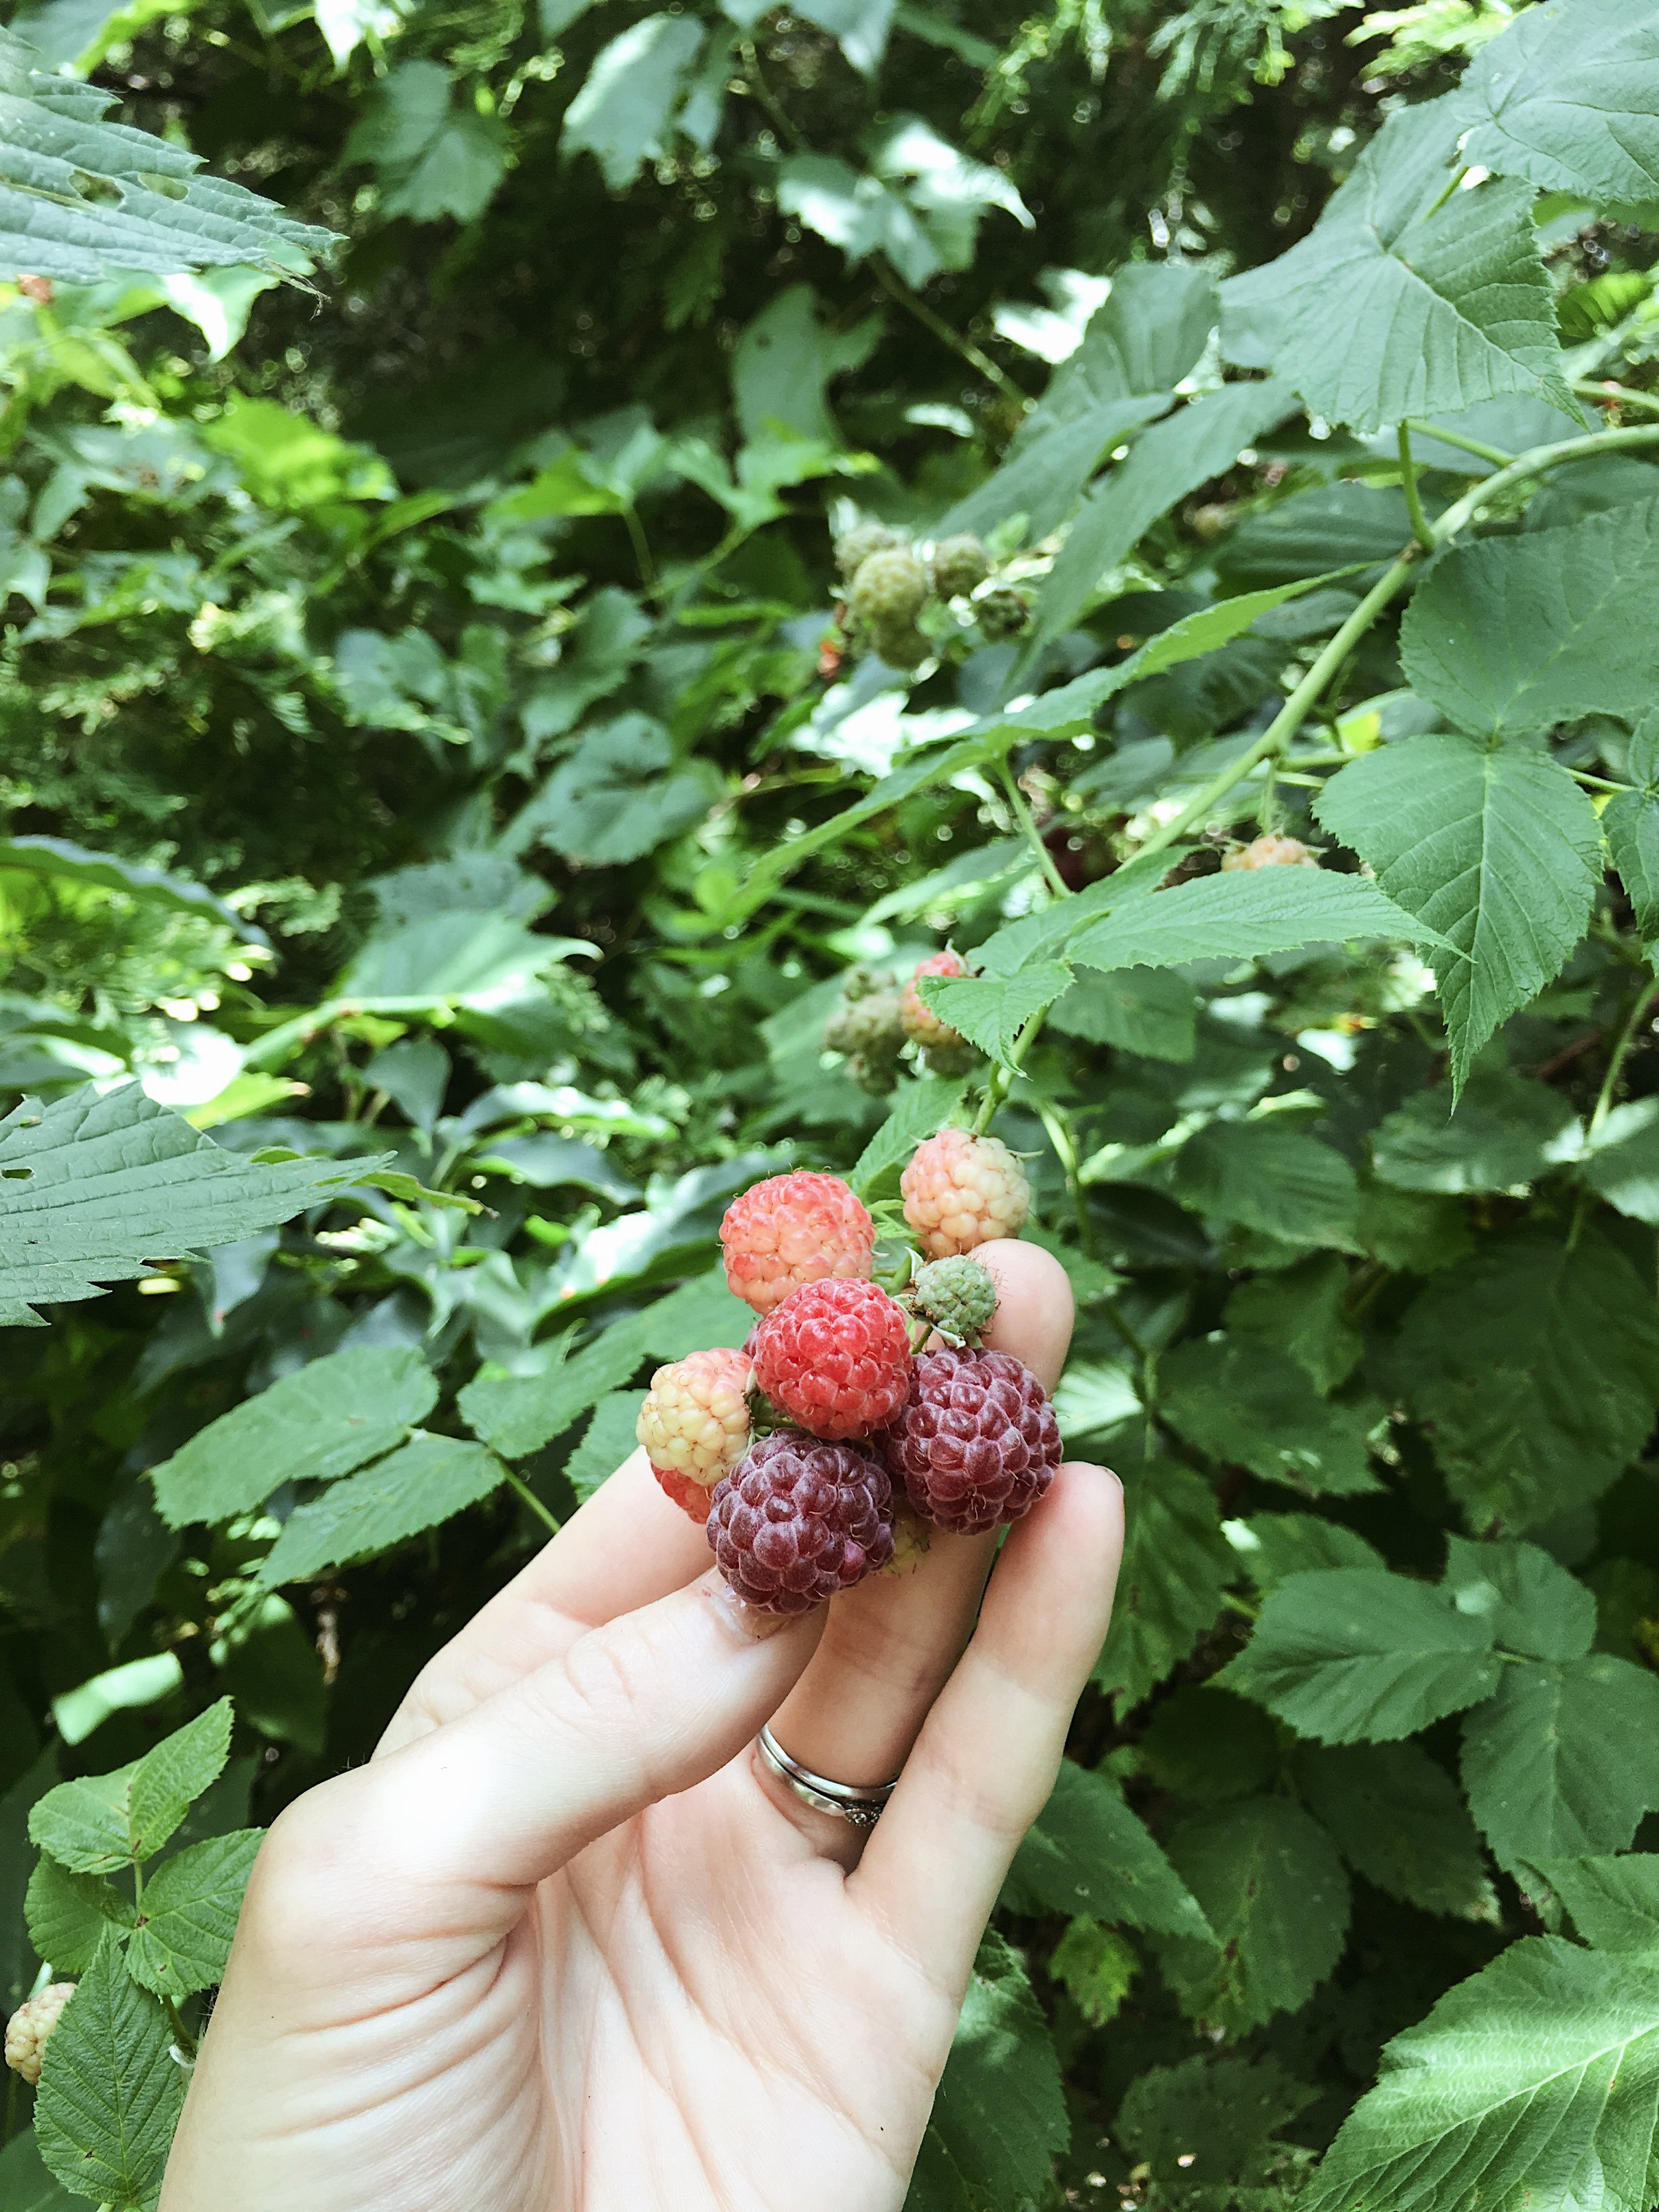 ONE VARIETY OF RASPBERRIES WE HAVE GROWING IN THE YARD. THESE WERE PLANTED BY THE PREVIOUS OWNERS AND WE'RE SO THANKFUL TO HAVE THEM! THEY'RE HUGE AND SO DELICIOUS.